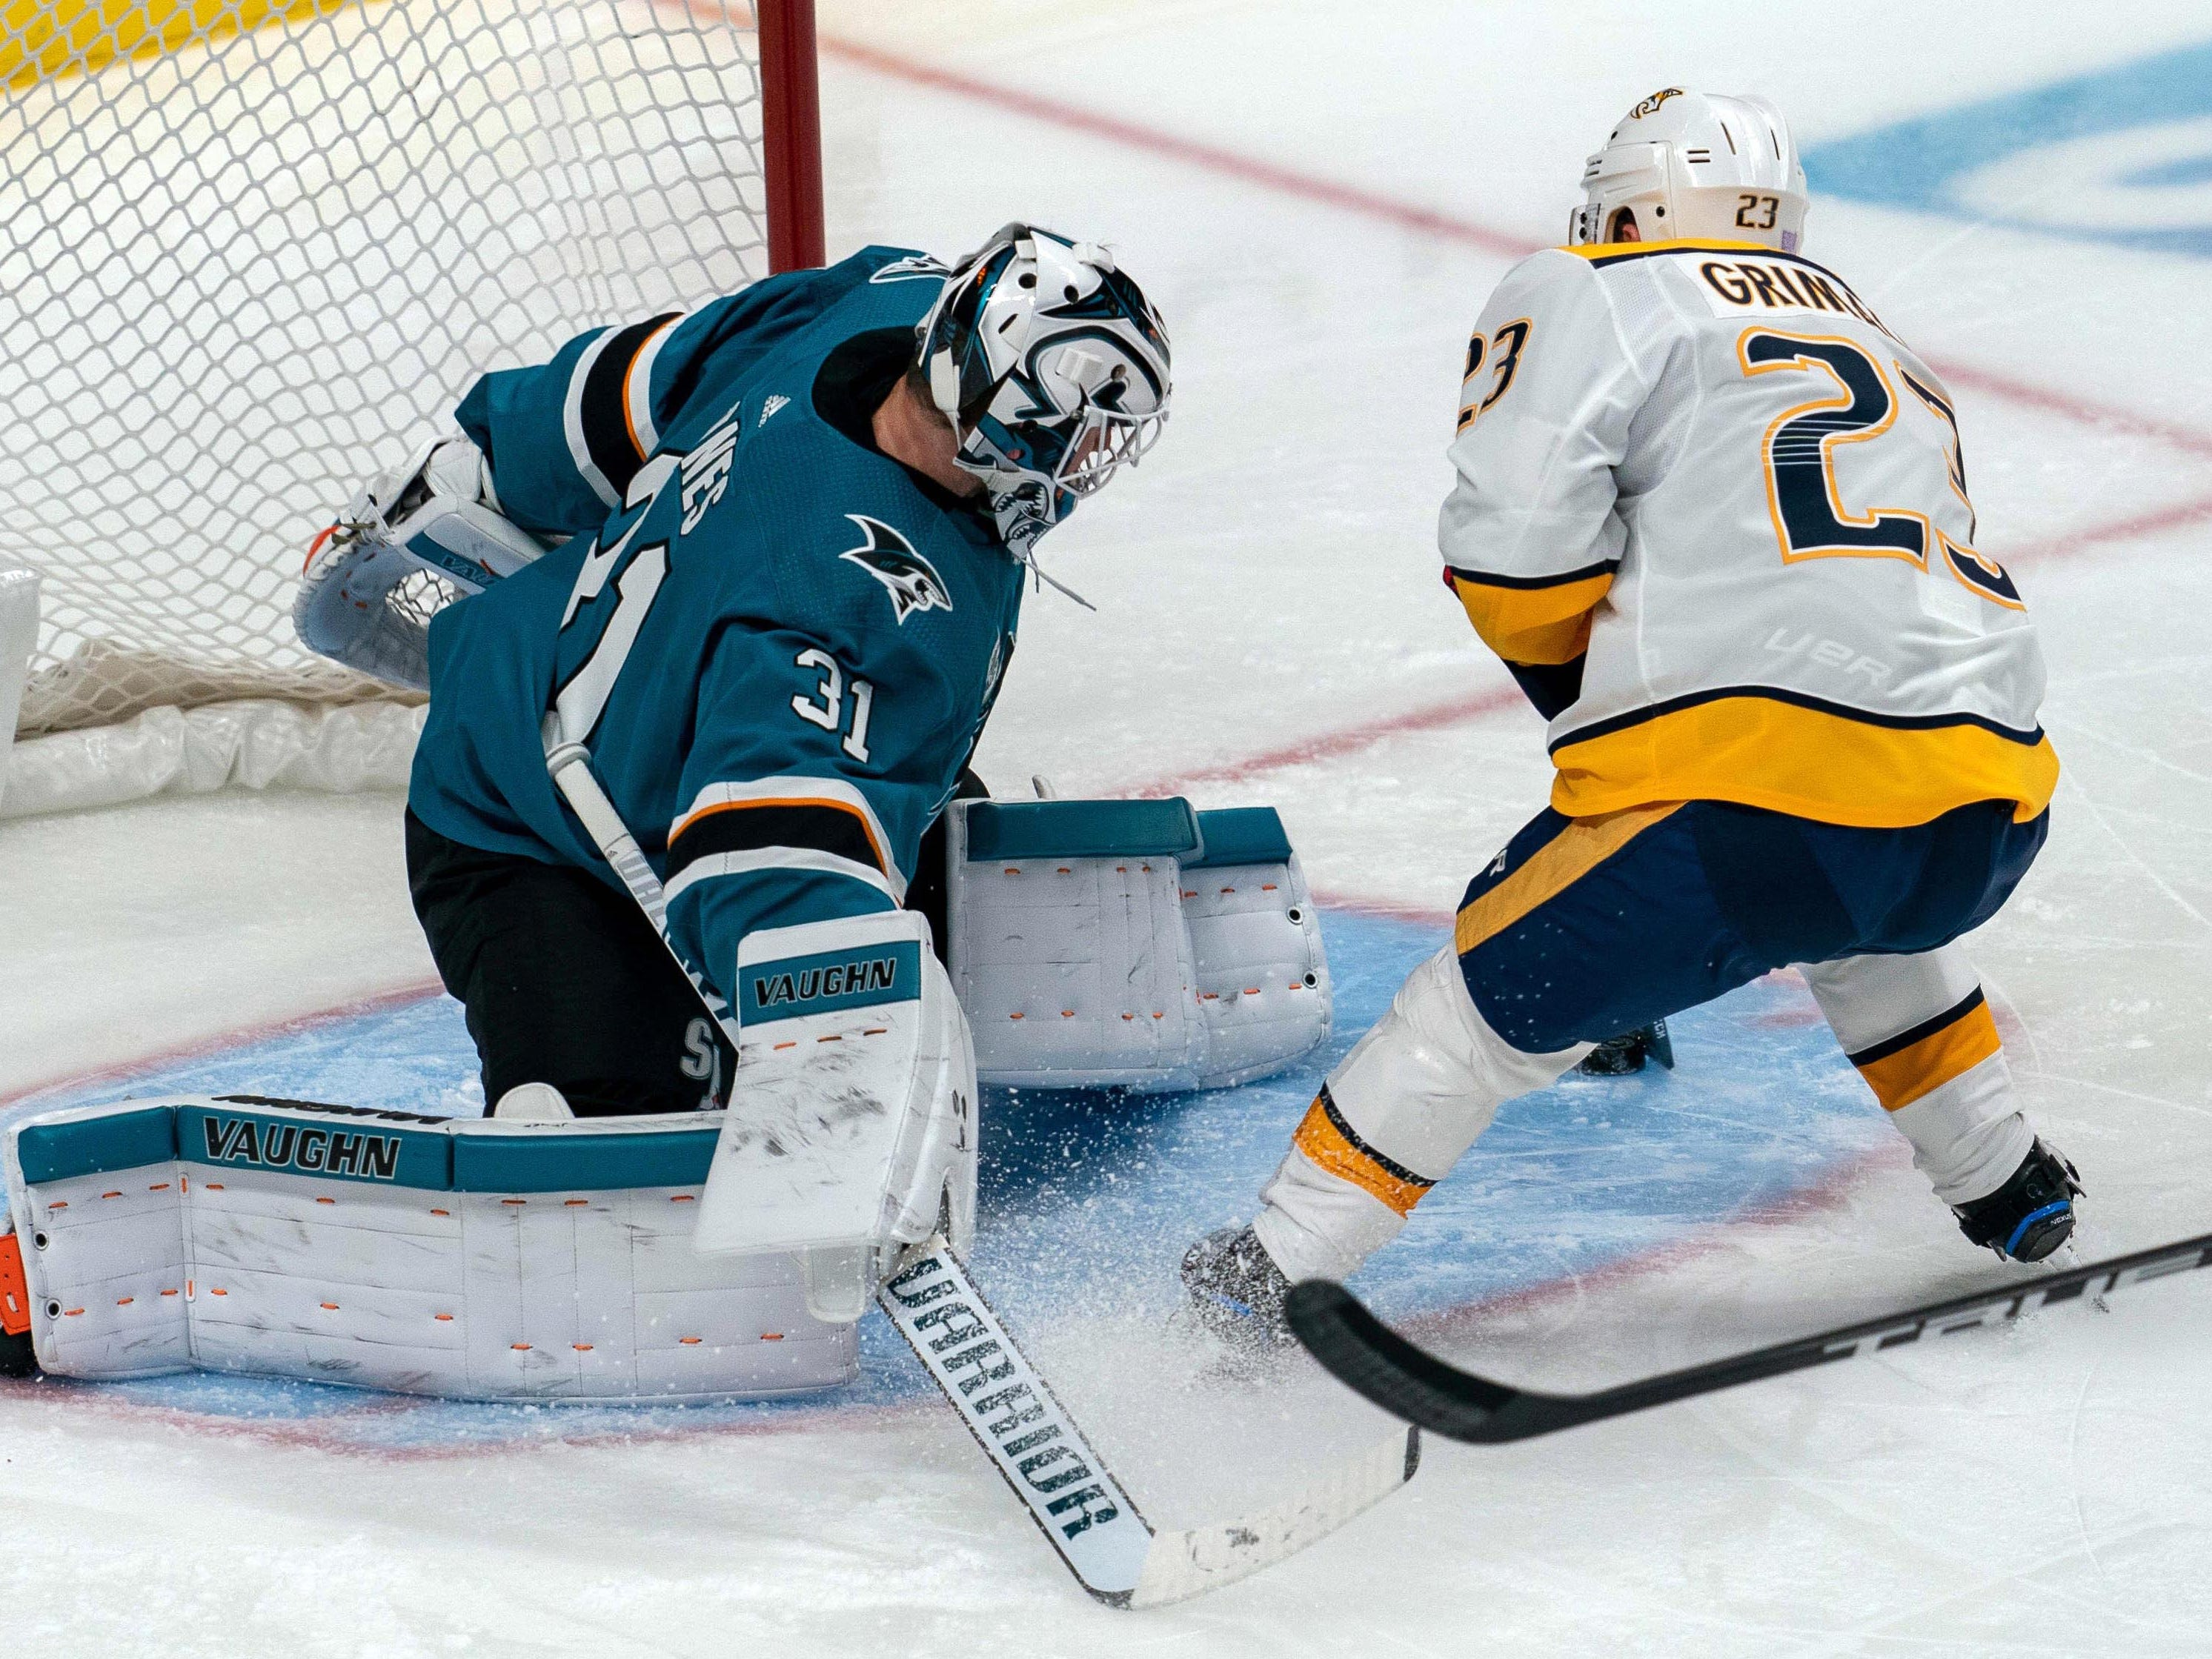 Nashville Predators center Rocco Grimaldi (23) jukes San Jose Sharks goaltender Martin Jones (31) during the third period to score during the third period at SAP Center at San Jose.